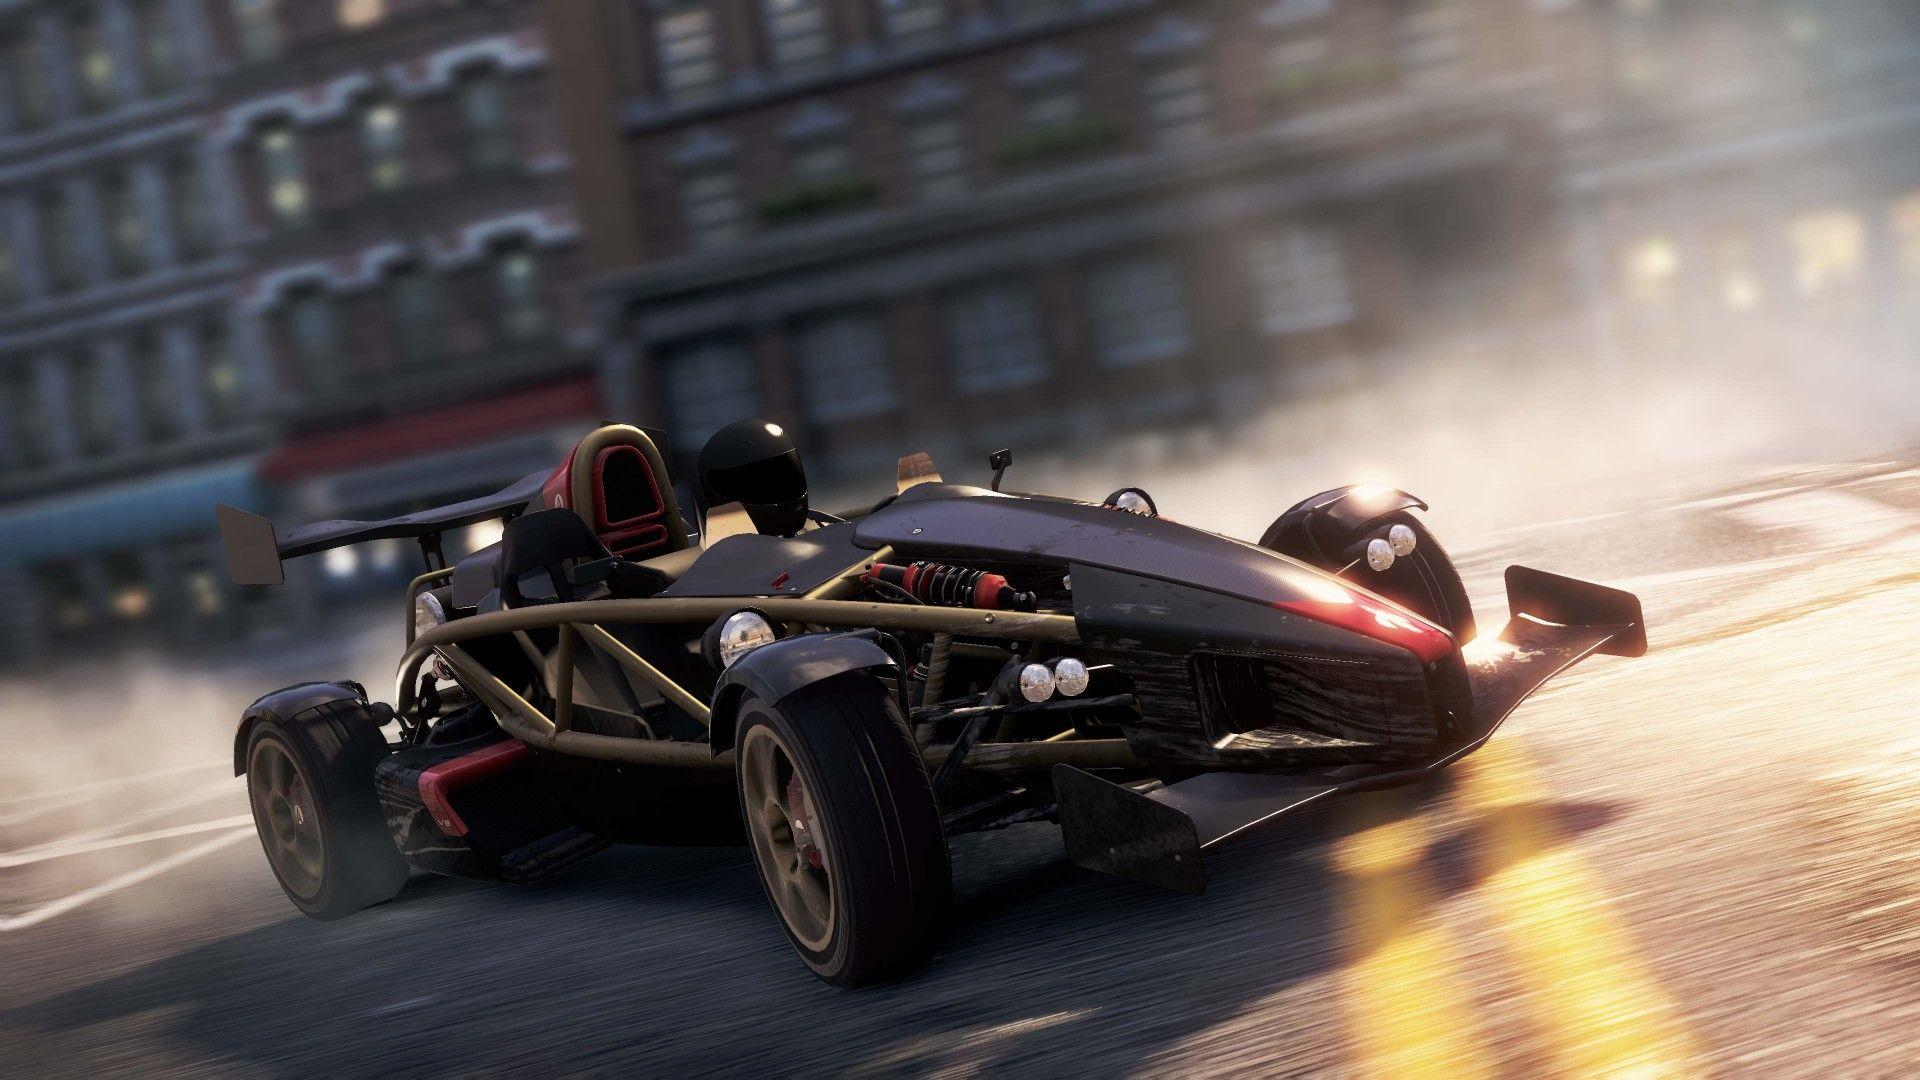 Nfs Most Wanted Cars Wallpapers Wallpaper Cave